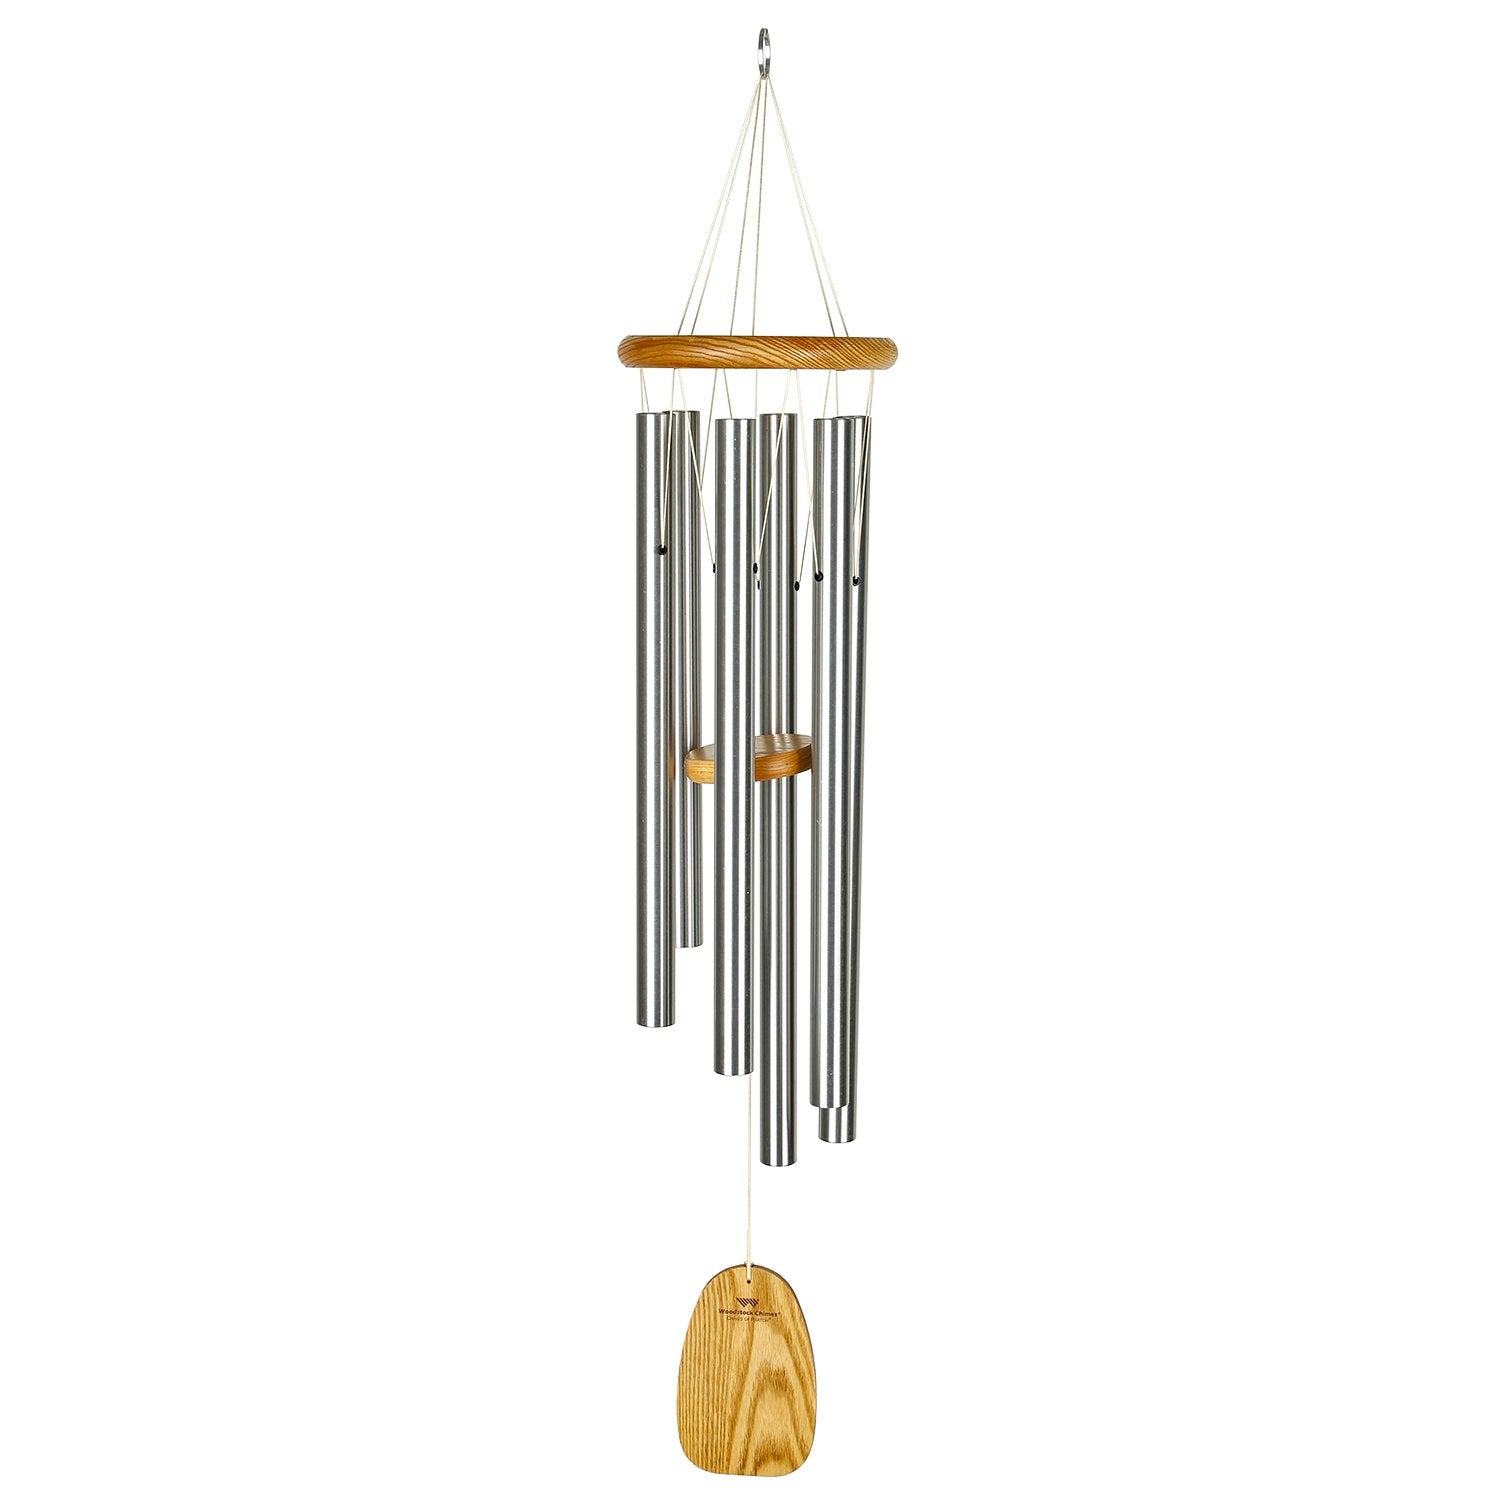 Chimes of Partch full product image